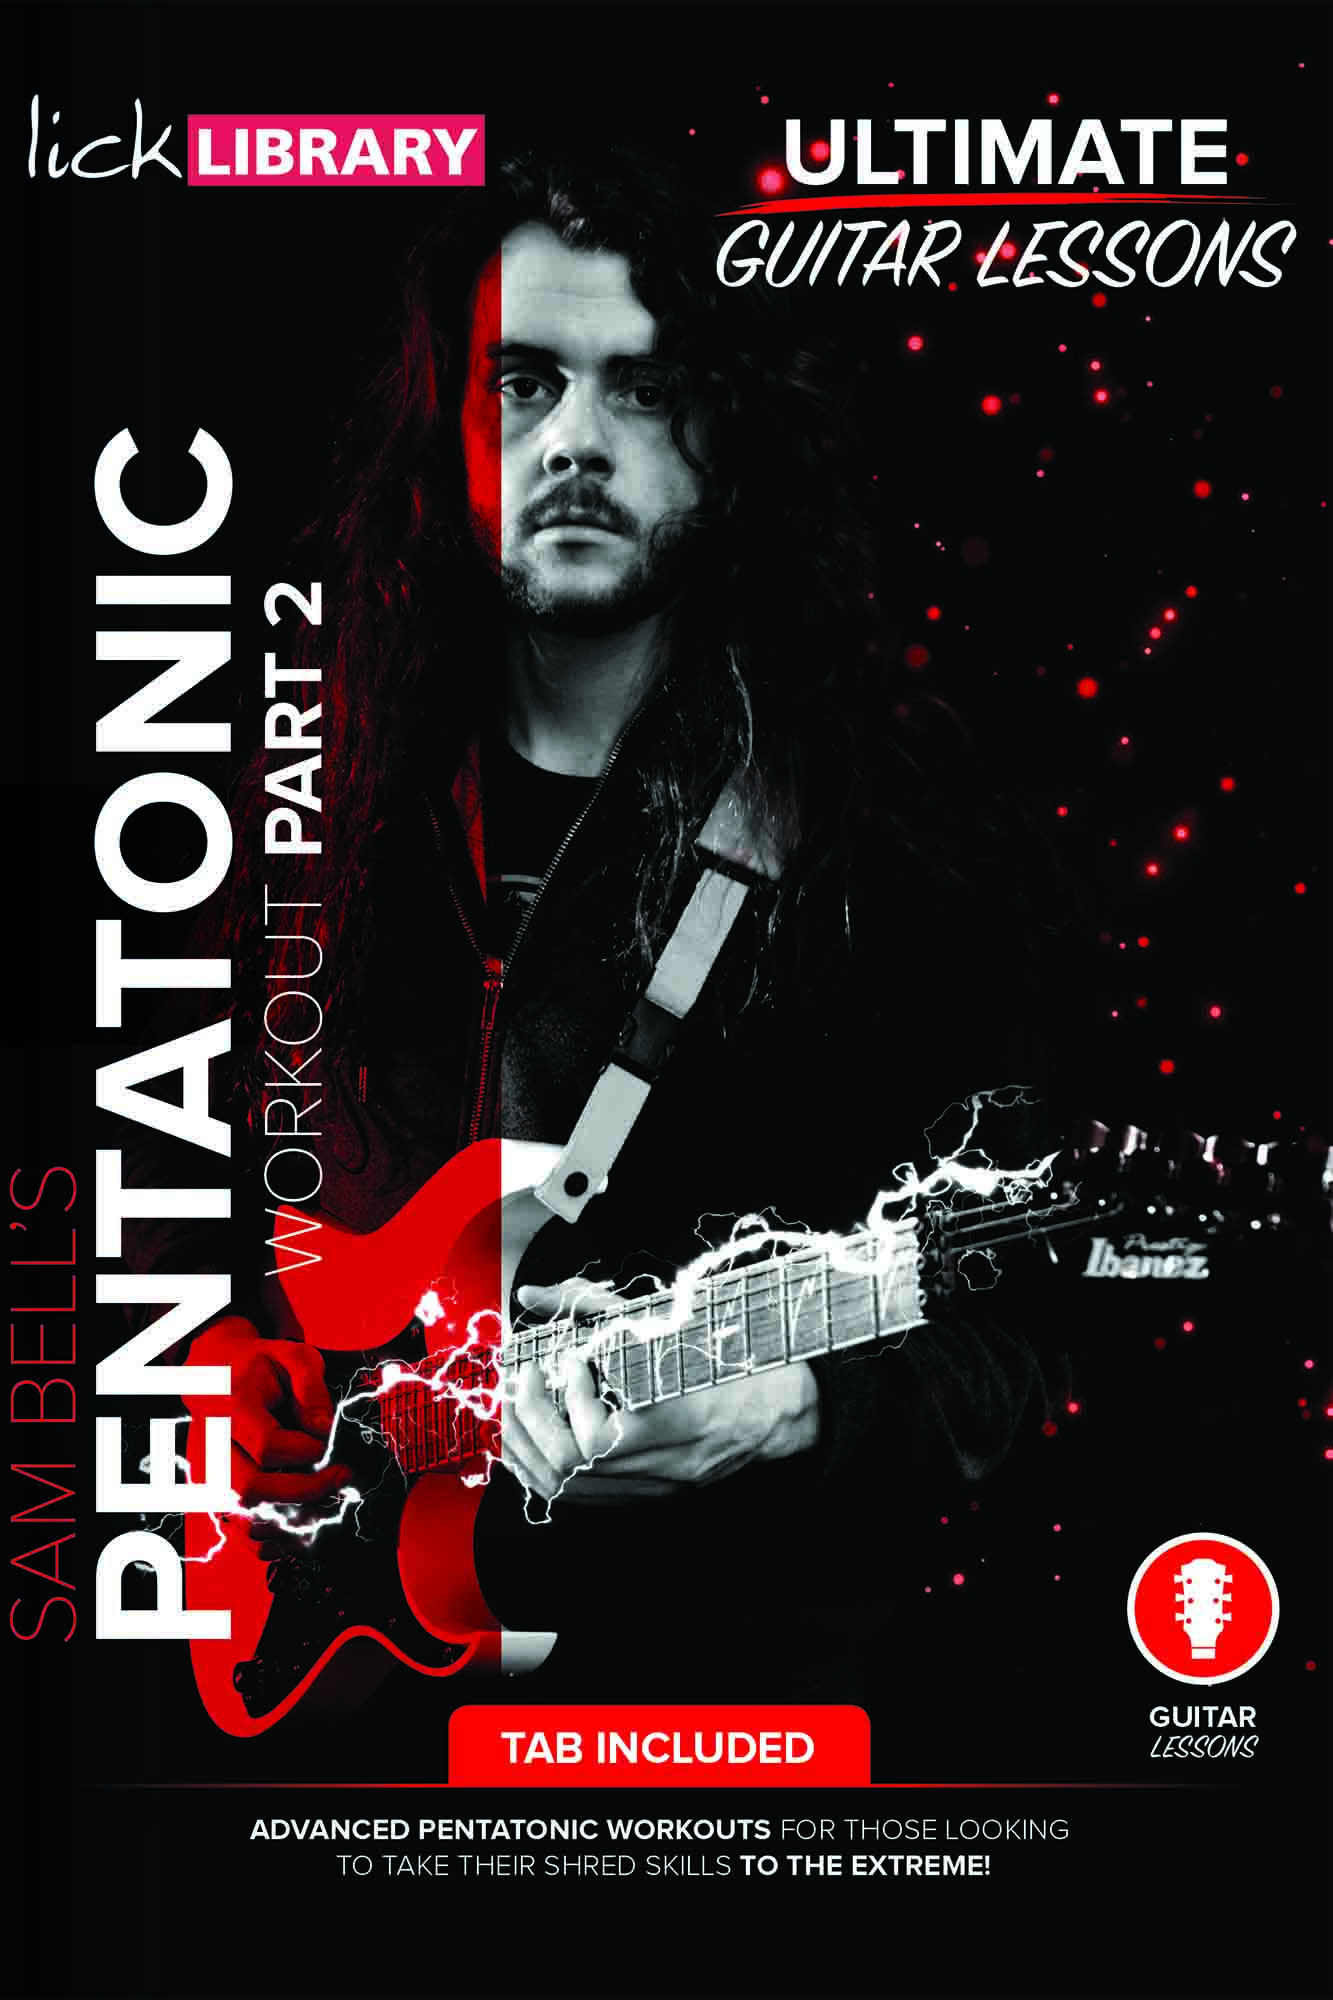 Sam Bell's Pentatonic Workout Part 2